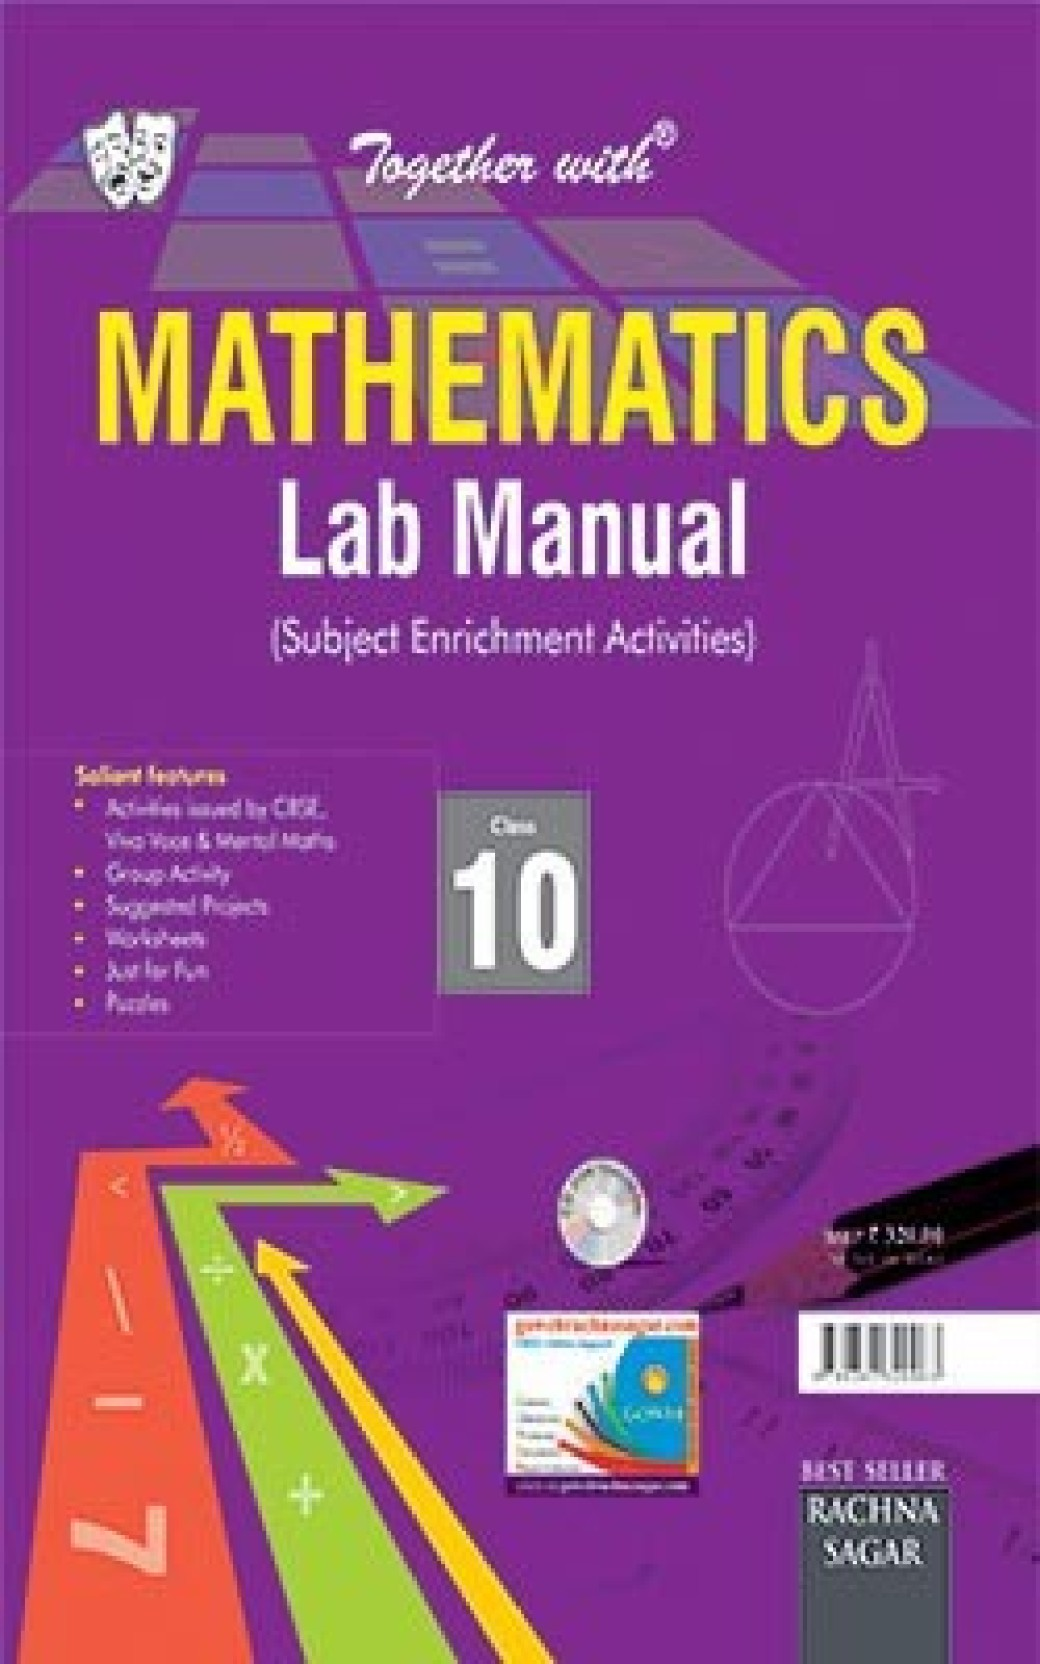 Together With CBSE/NCERT Lab Manual Mathematics Class 10 for 2019  Examination. ADD TO CART